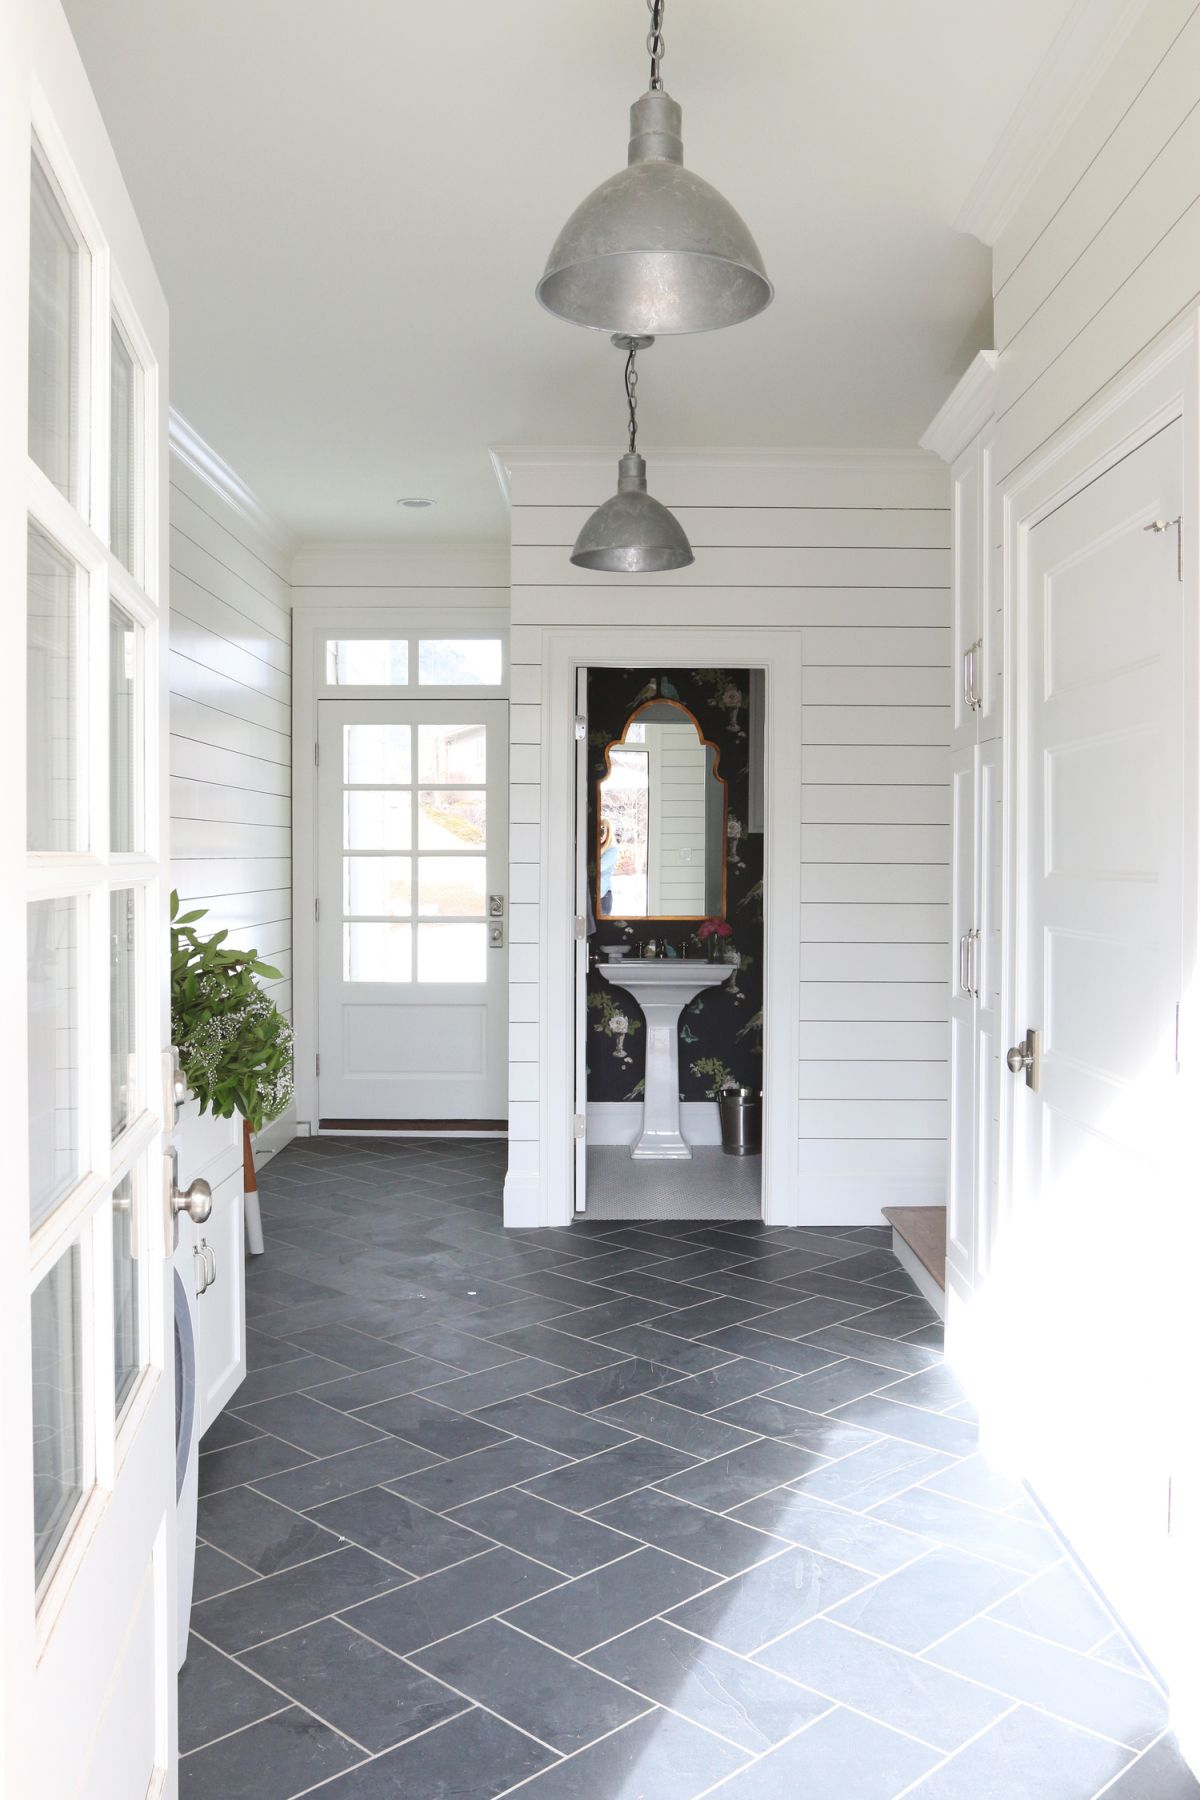 Foyer Tile Ideas Please : Floor tile designs for the foyer